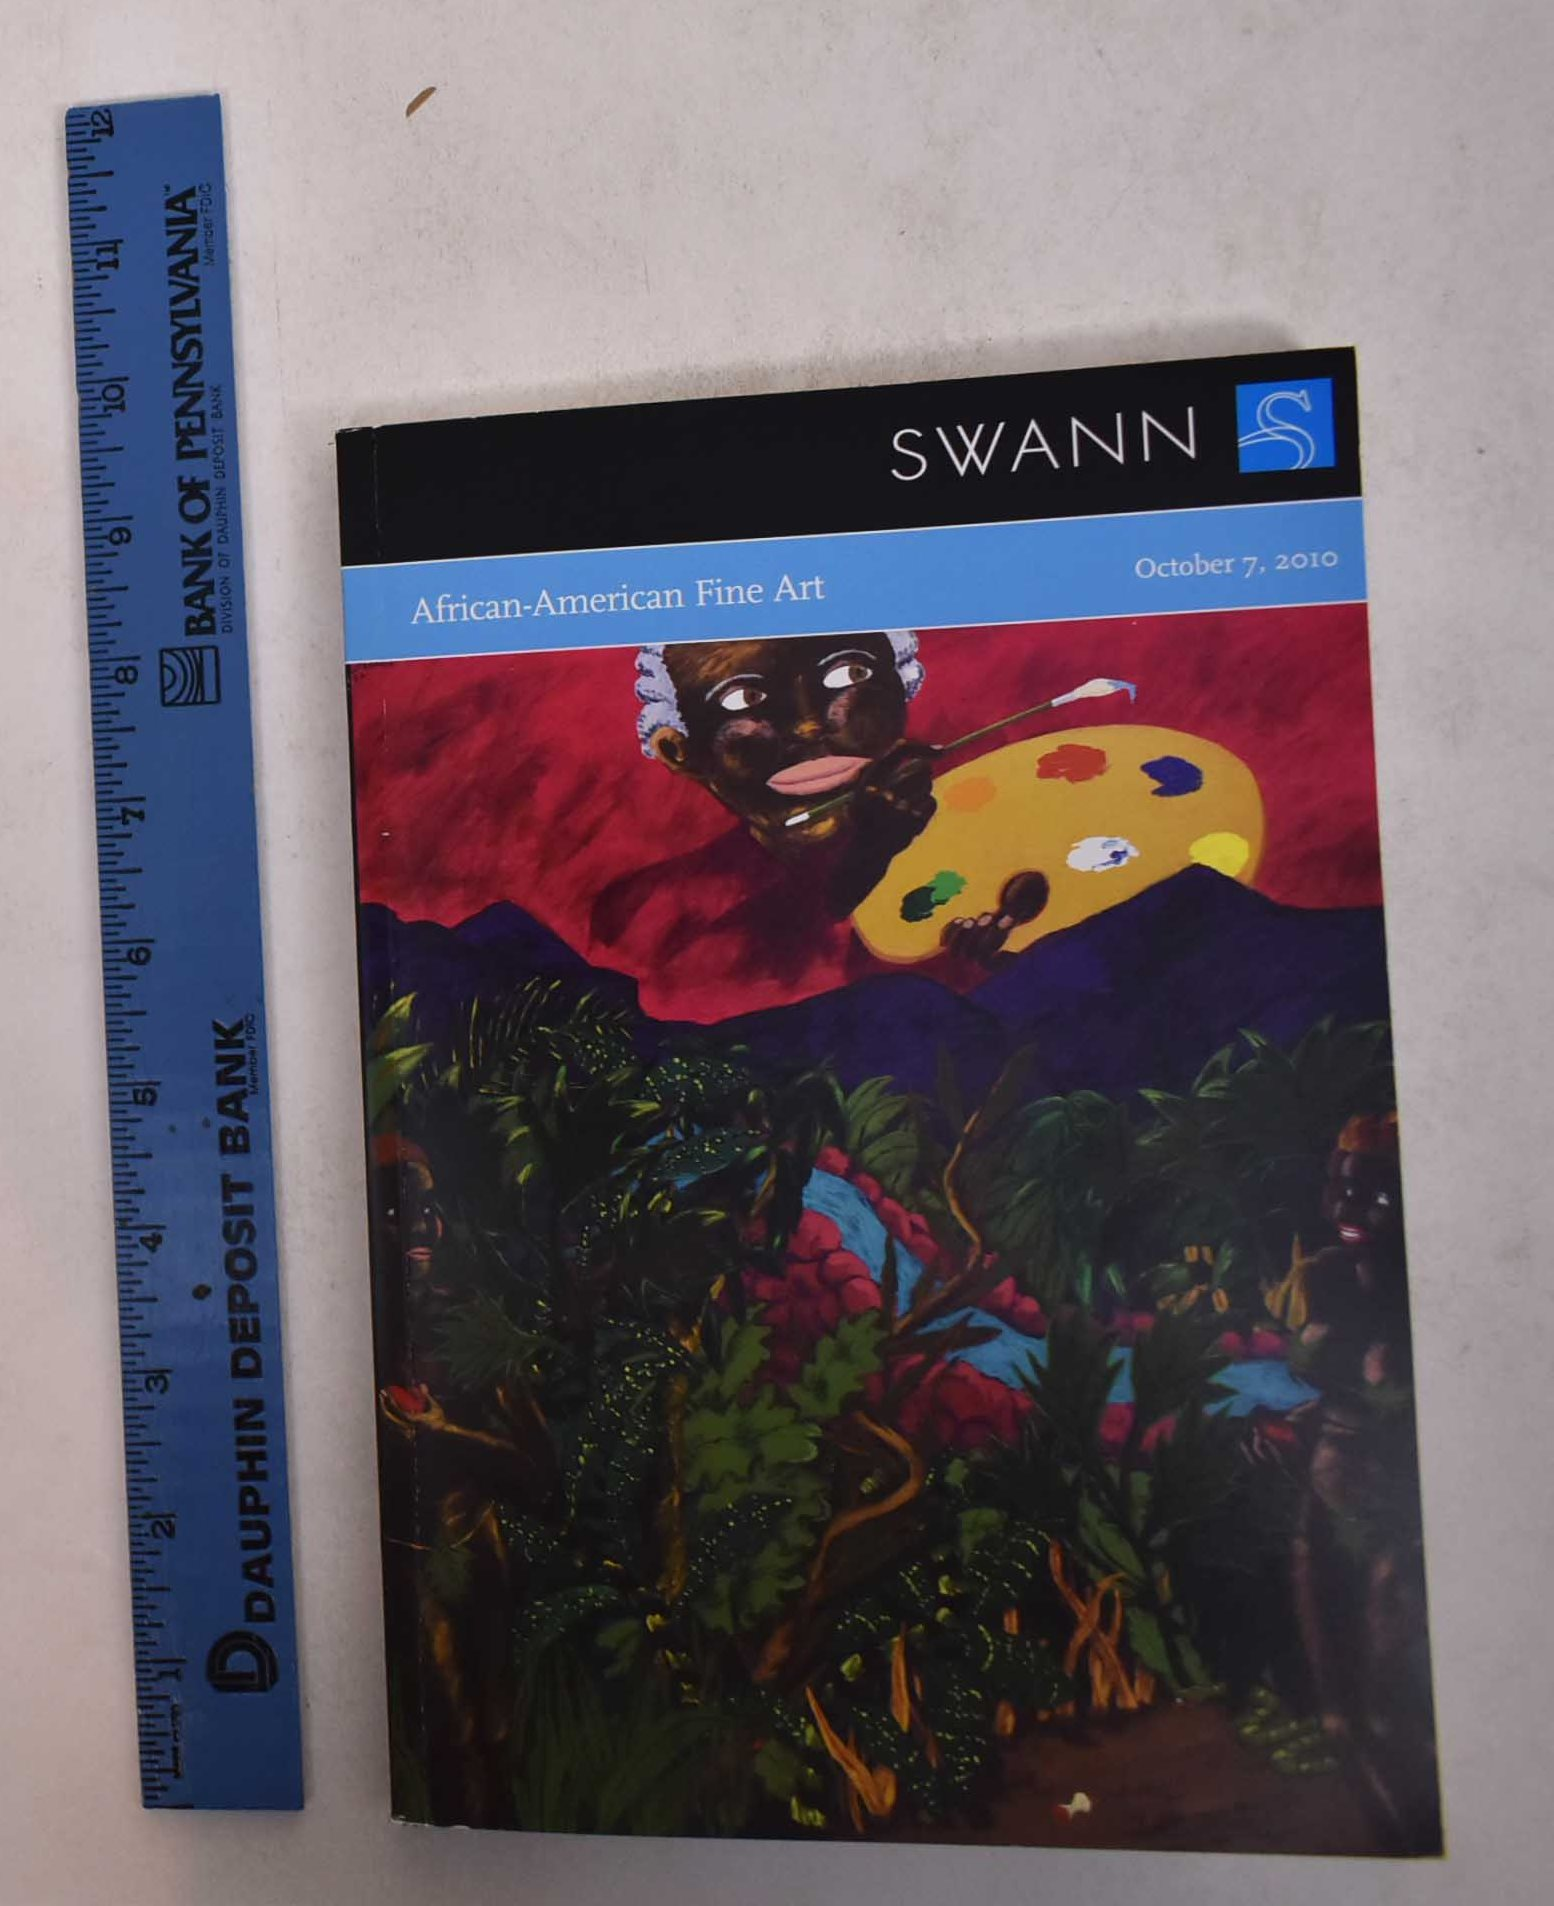 African American Fine Art by Swann Galleries on Mullen Books